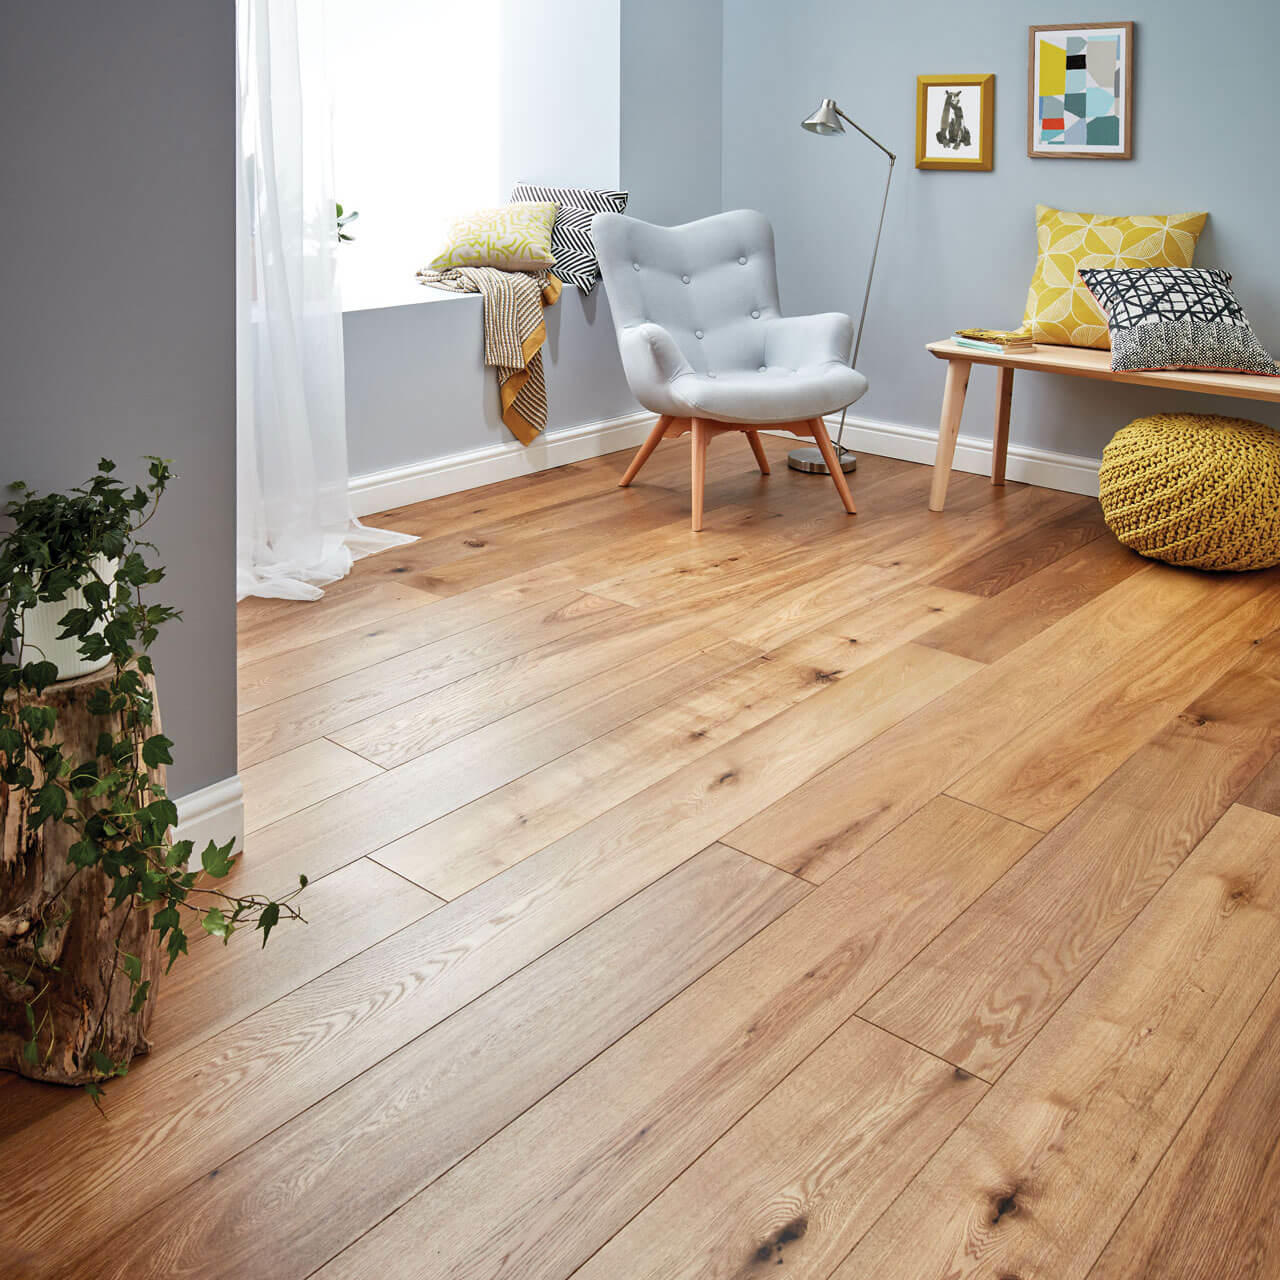 Woodpecker Harlech Smoked Oak Oiled Engineered Wood Flooring 190mm 35-HSO-001